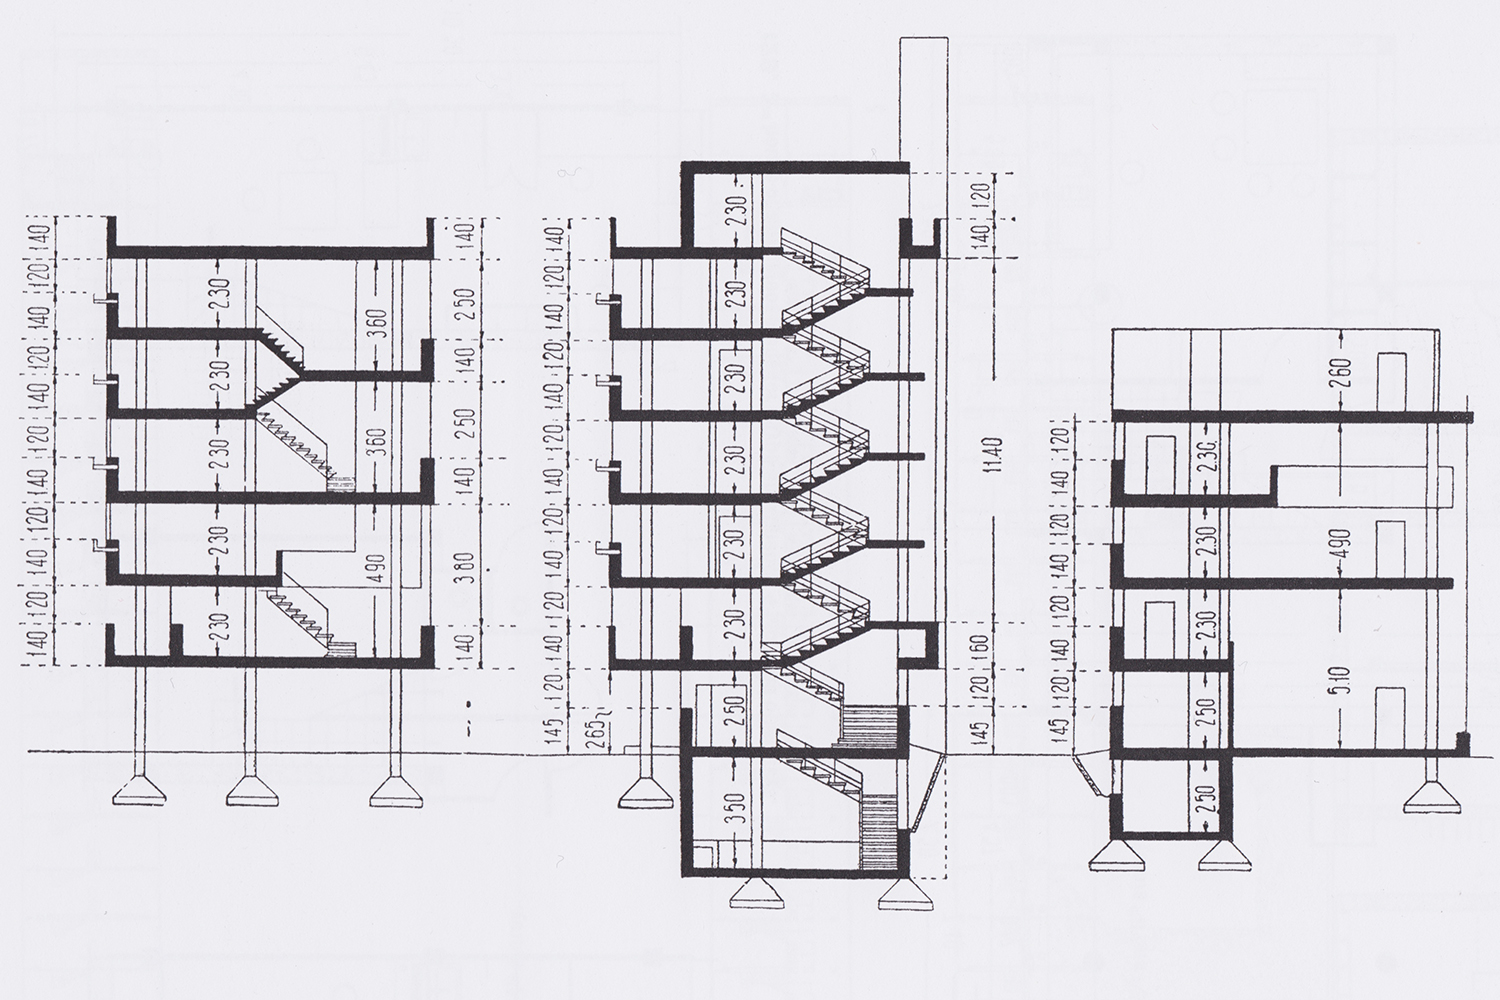 Narkomfin Building Sections For Residential Block And Communal H 265 Diagram Annexe